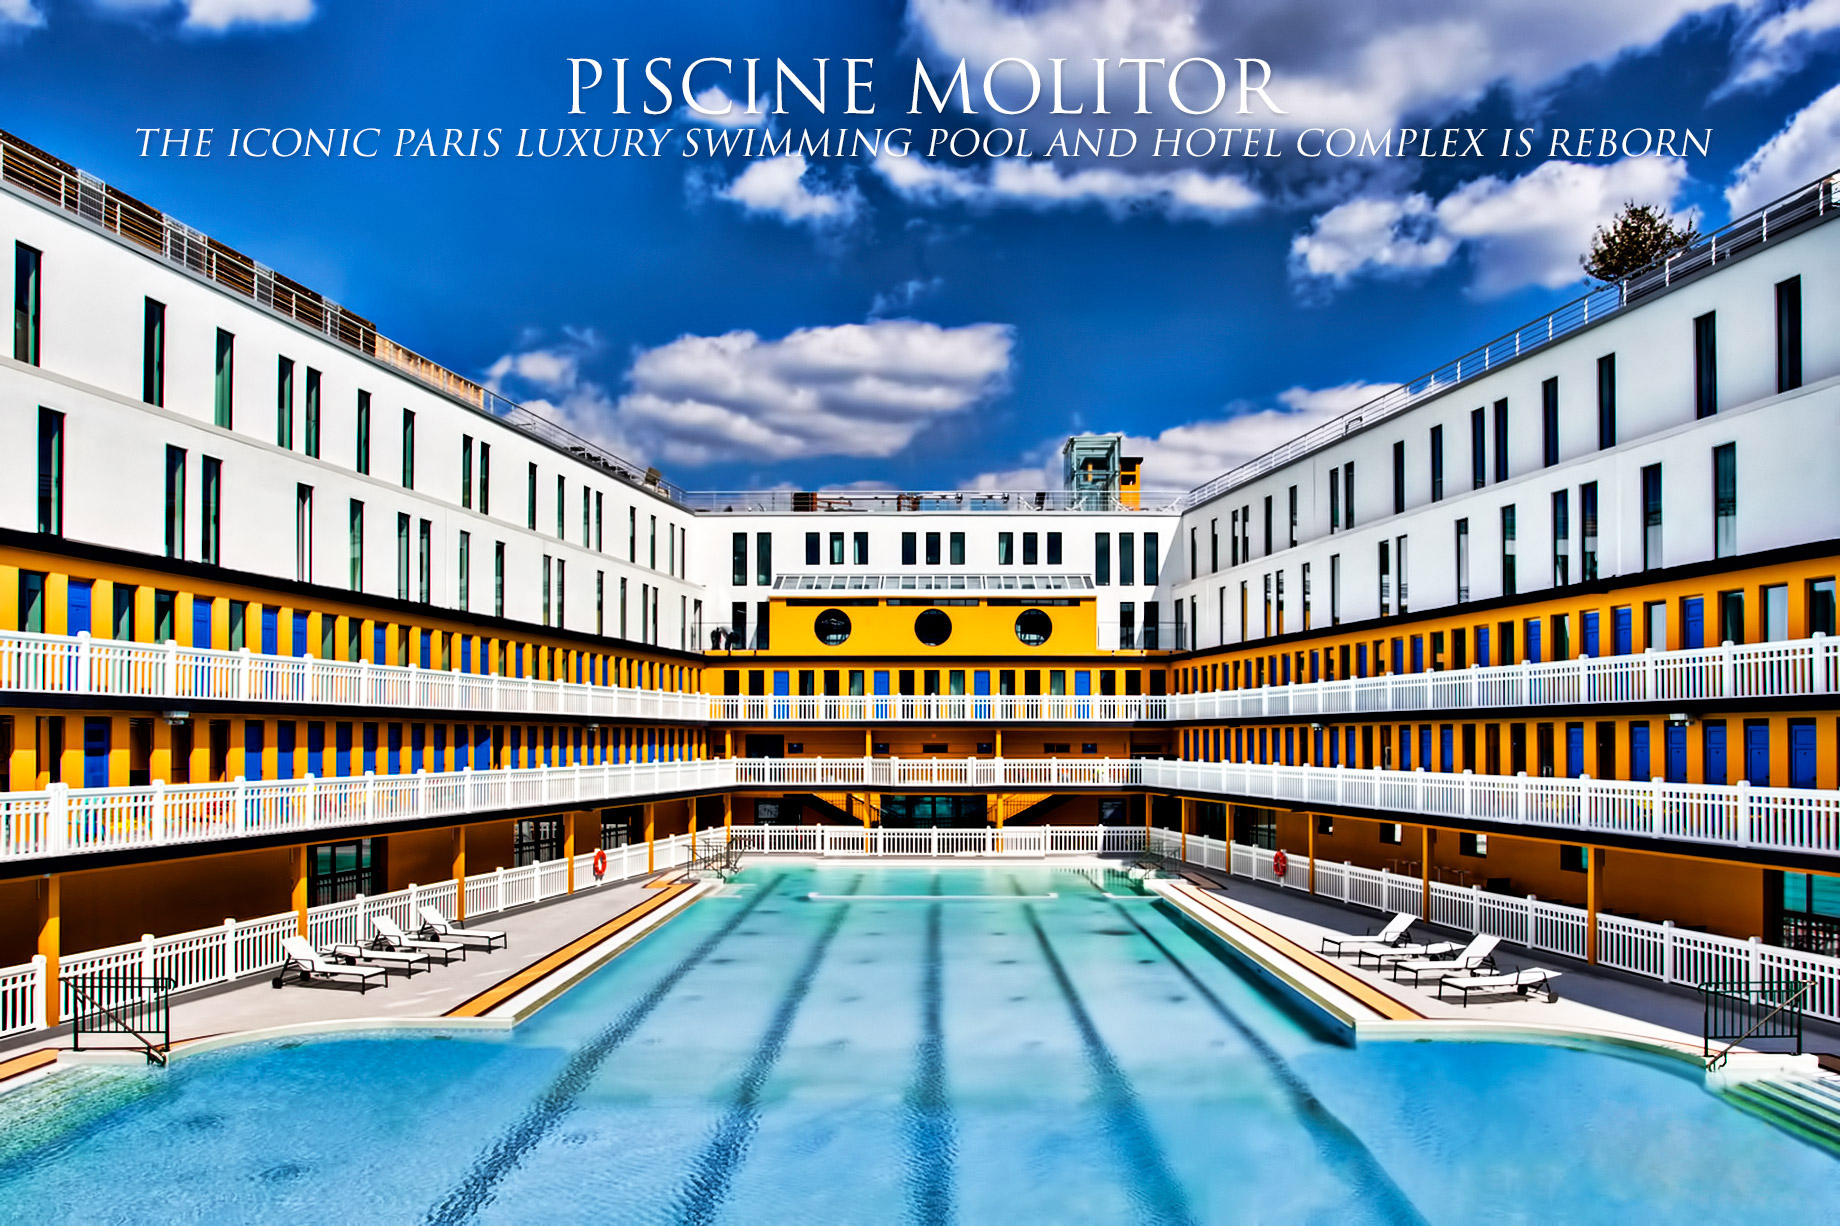 Piscine Molitor - The Iconic Paris Luxury Swimming Pool and Hotel Complex is Reborn